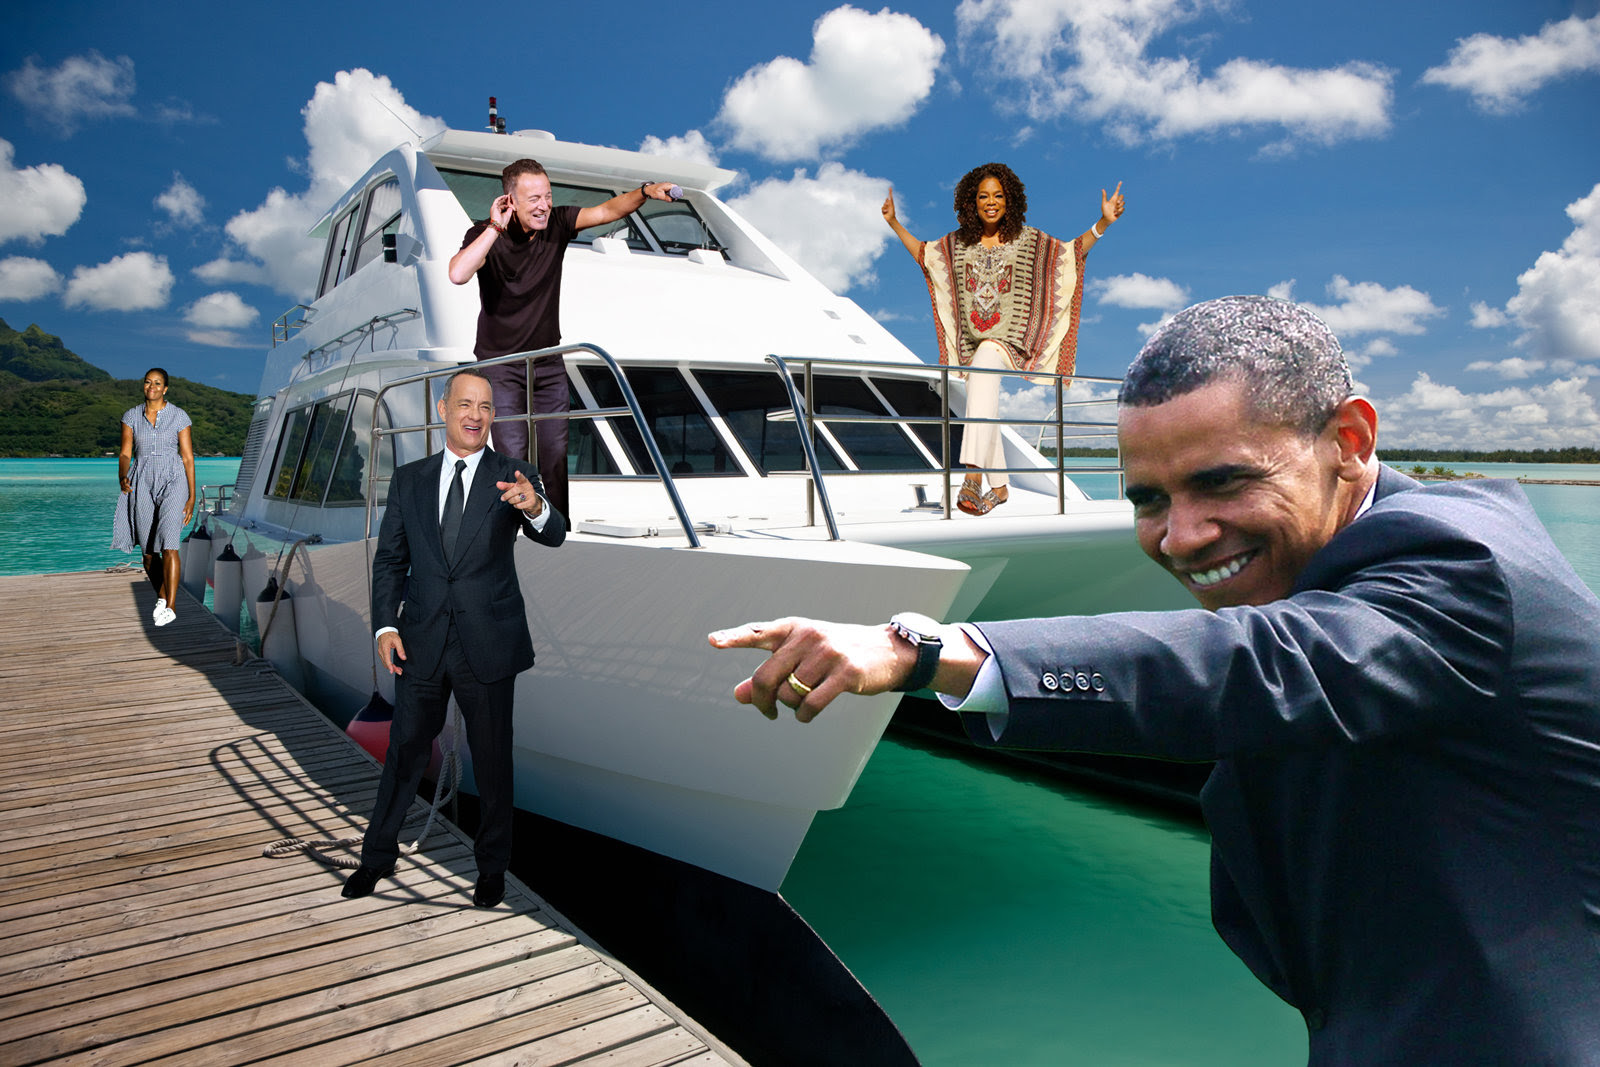 http://cdn-image.travelandleisure.com/sites/default/files/styles/1600x1000/public/1492111638/obama-tahiti-yacht-party-VIPONLY0417.jpg?itok=Cu80wd_G